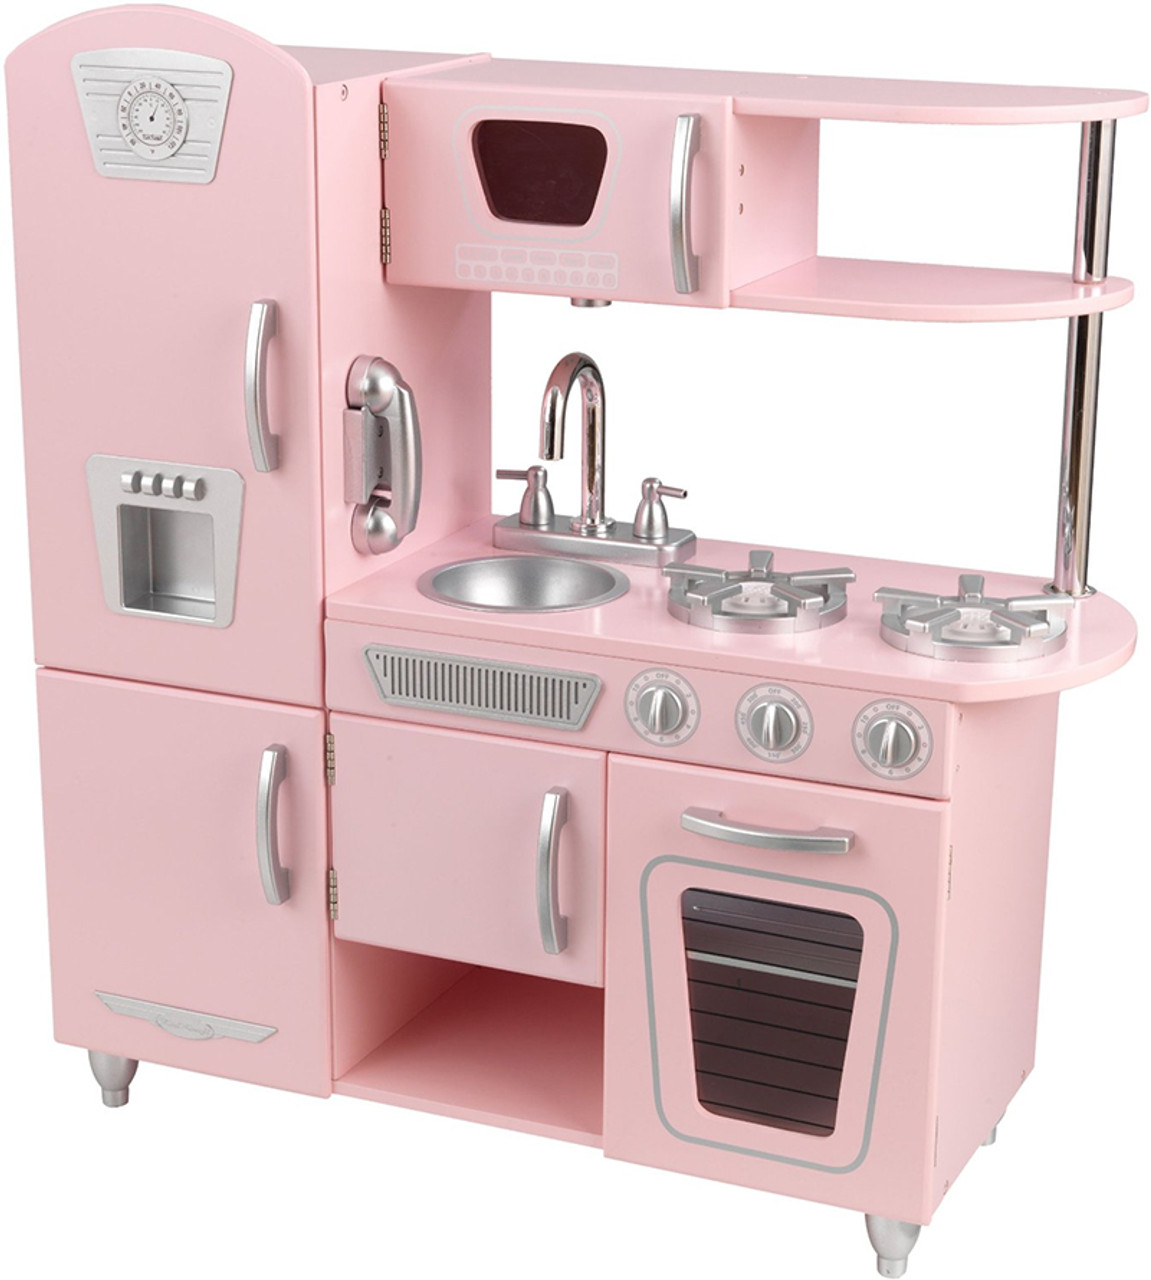 Kidkraft Kitchen On Sale Now Cheapest Prices Online Fast Shipping